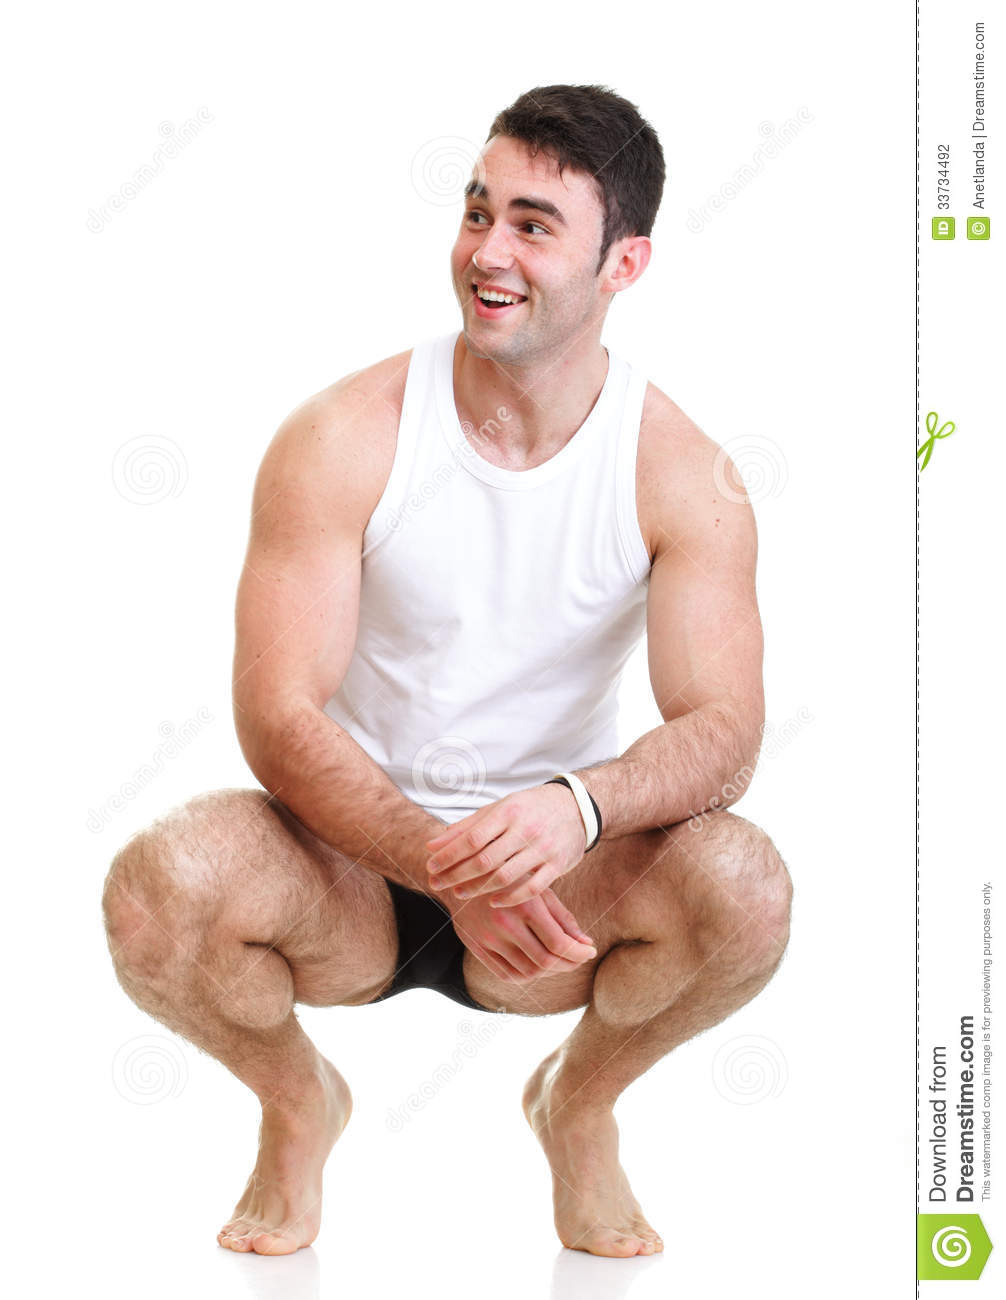 healthy-happy-young-man-isolated-white-background-33734492.jpg